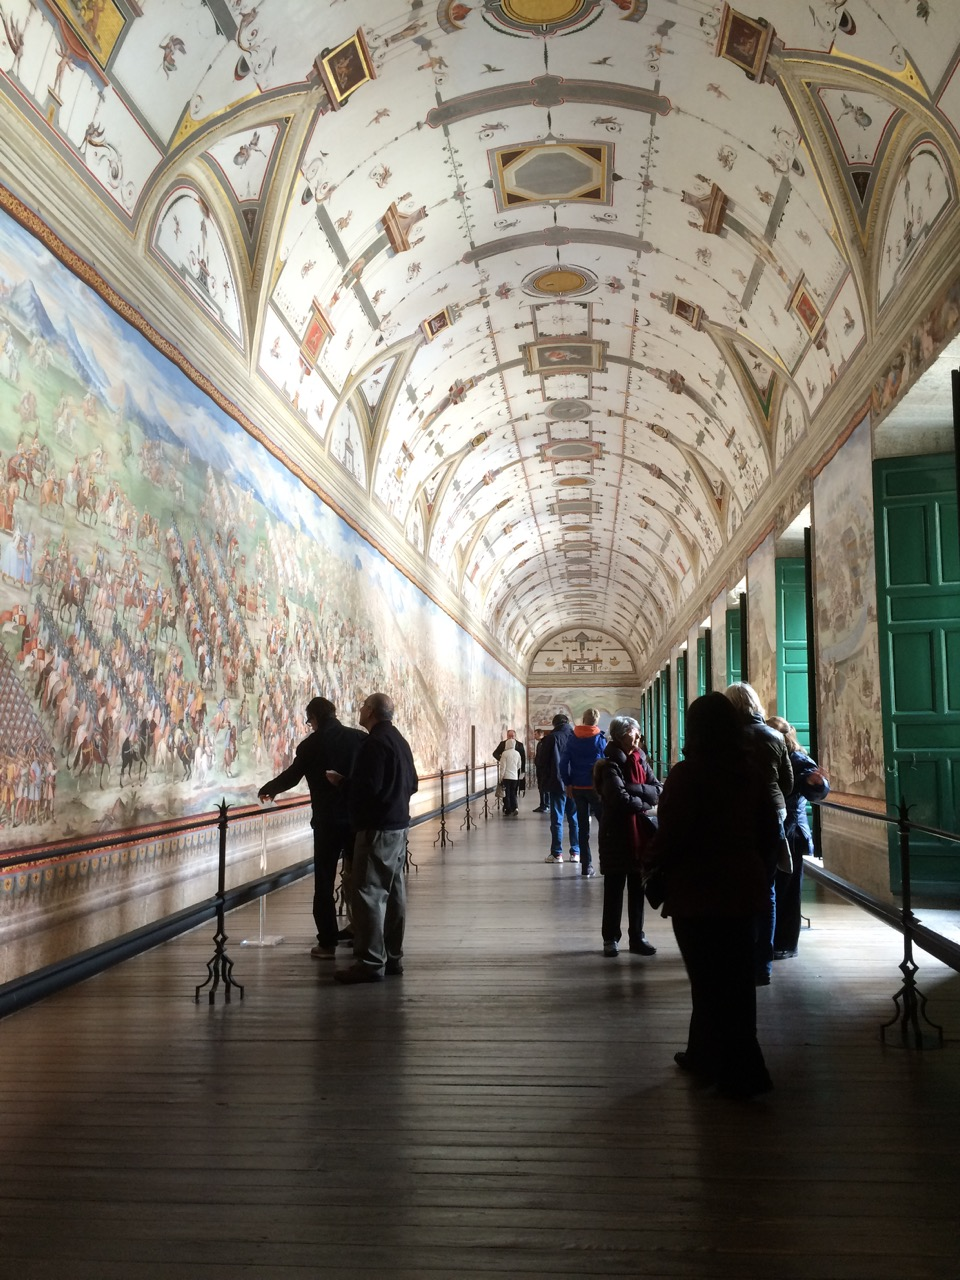 Hall of Battles: fresco paintings depict the most important Spanish military victories